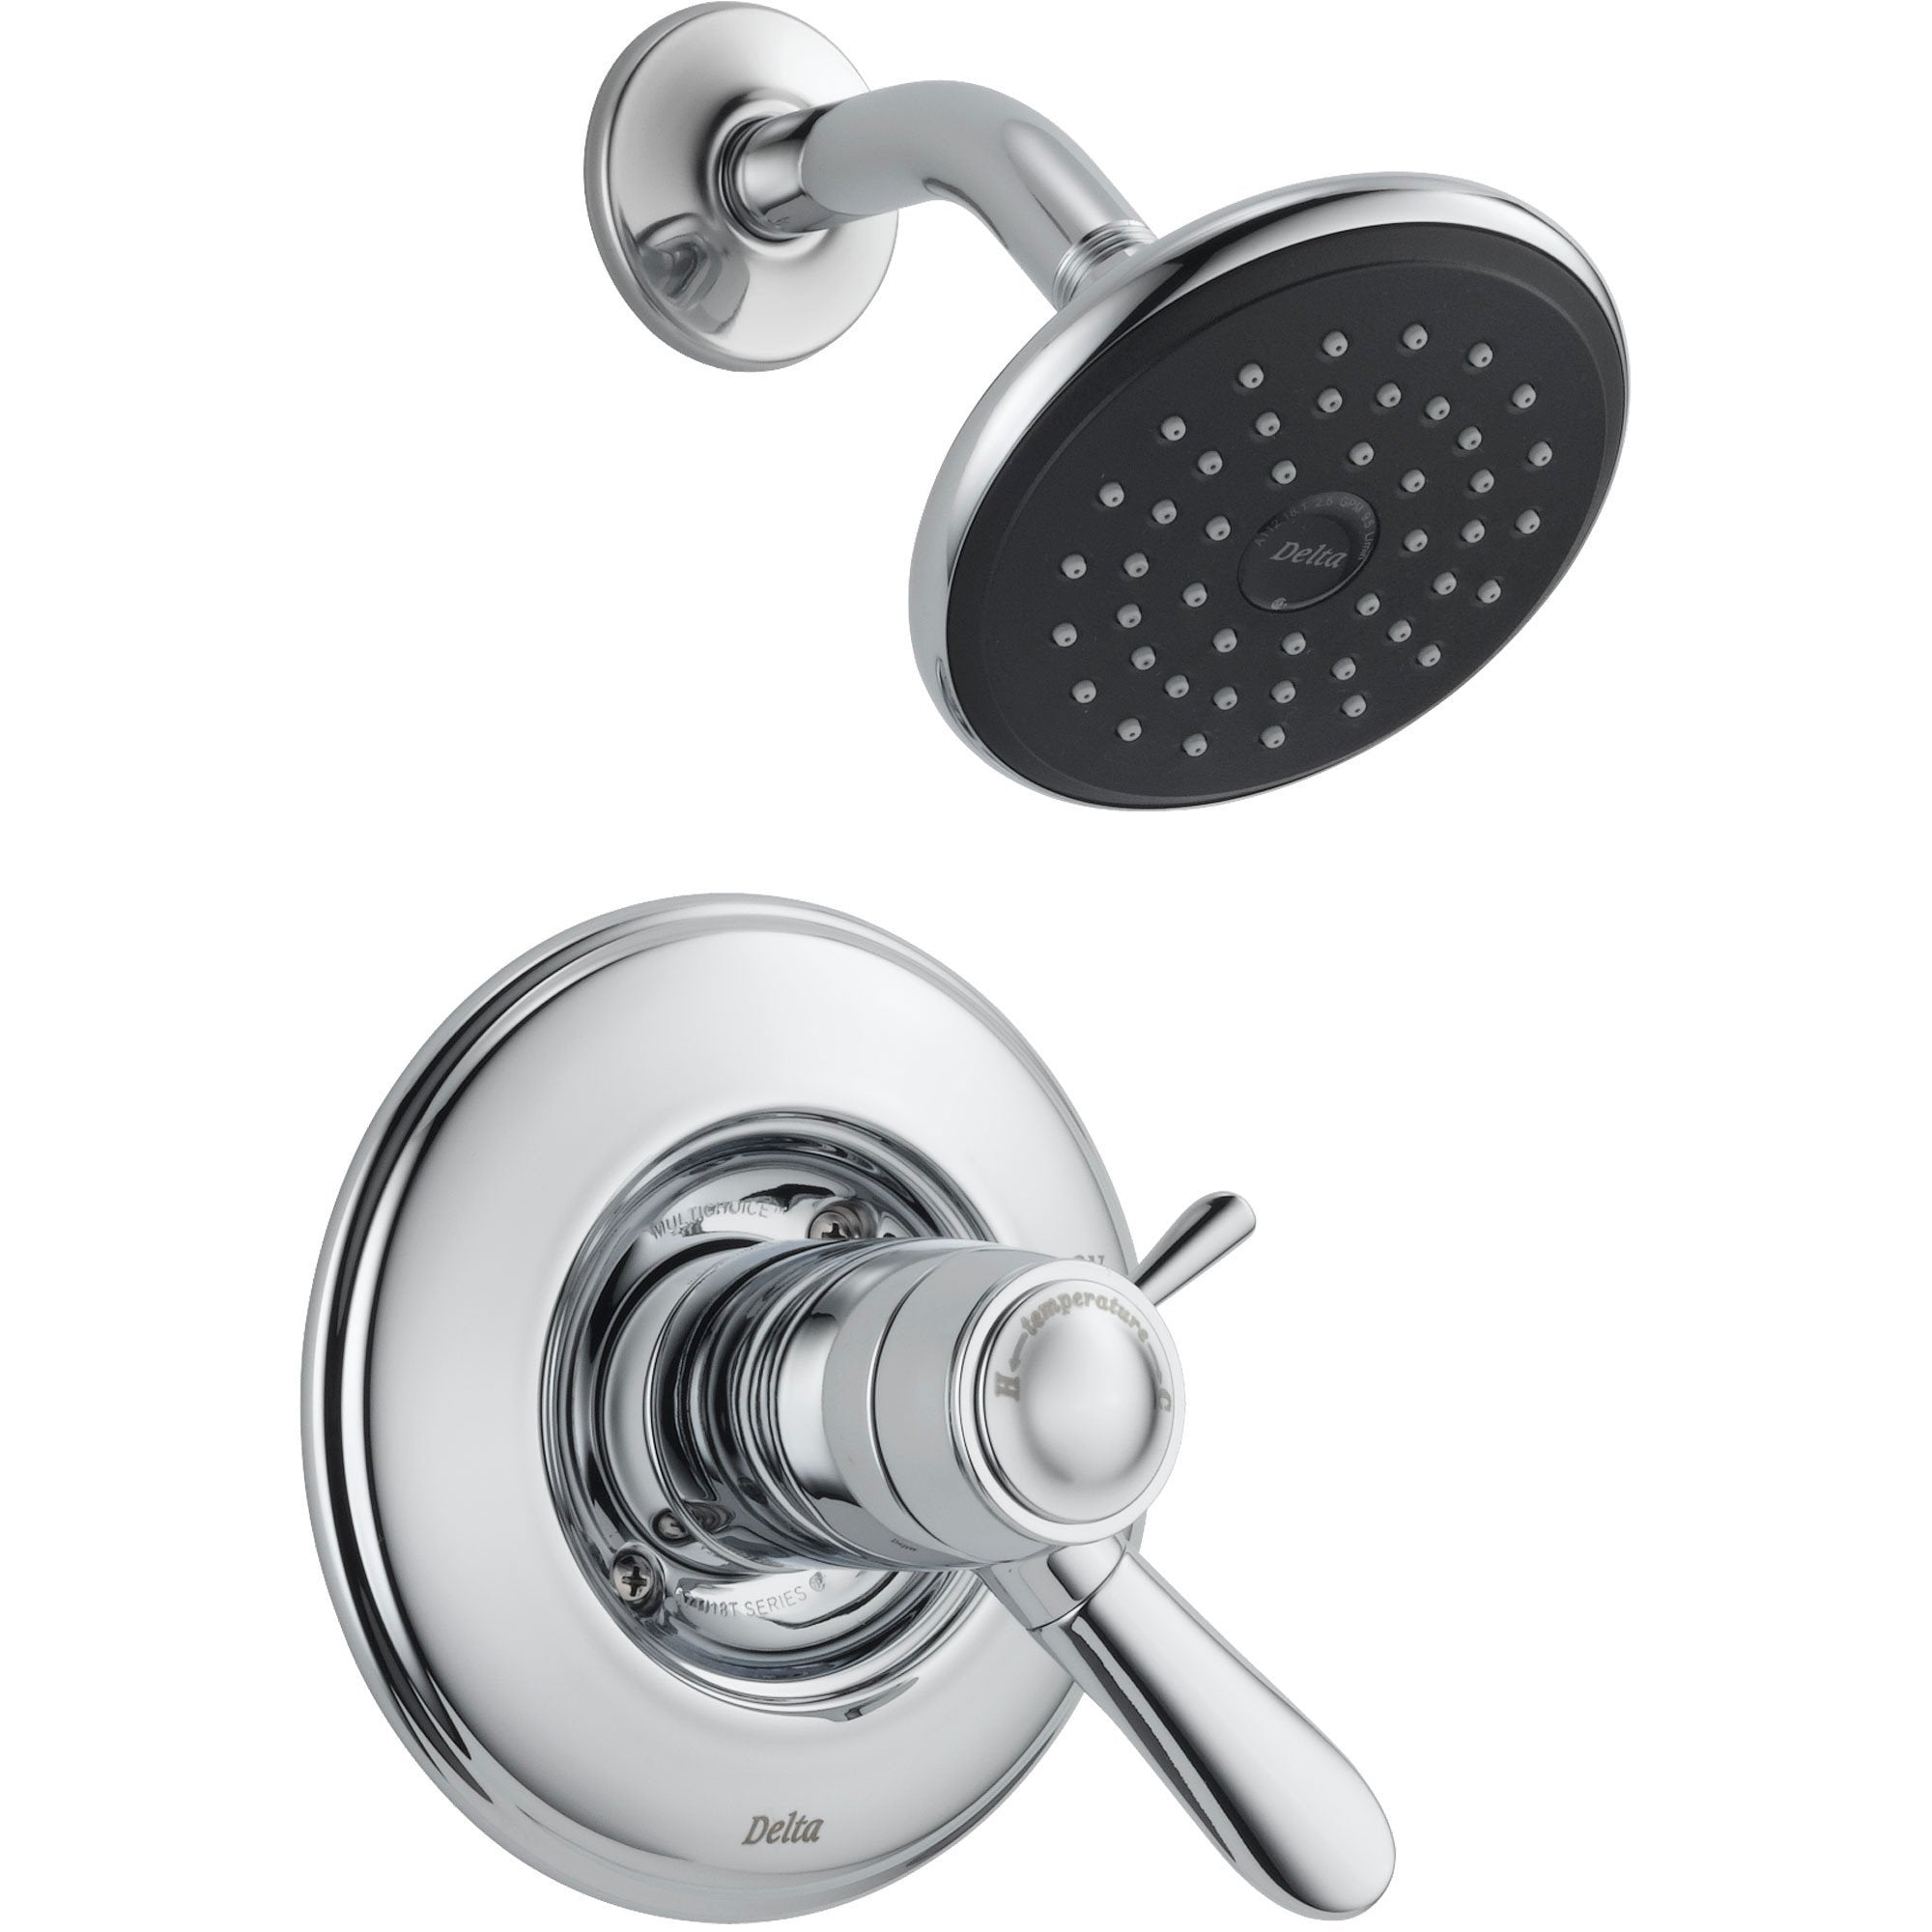 Delta Lahara Dual Control Chrome Thermostatic Shower Faucet with Valve D828V